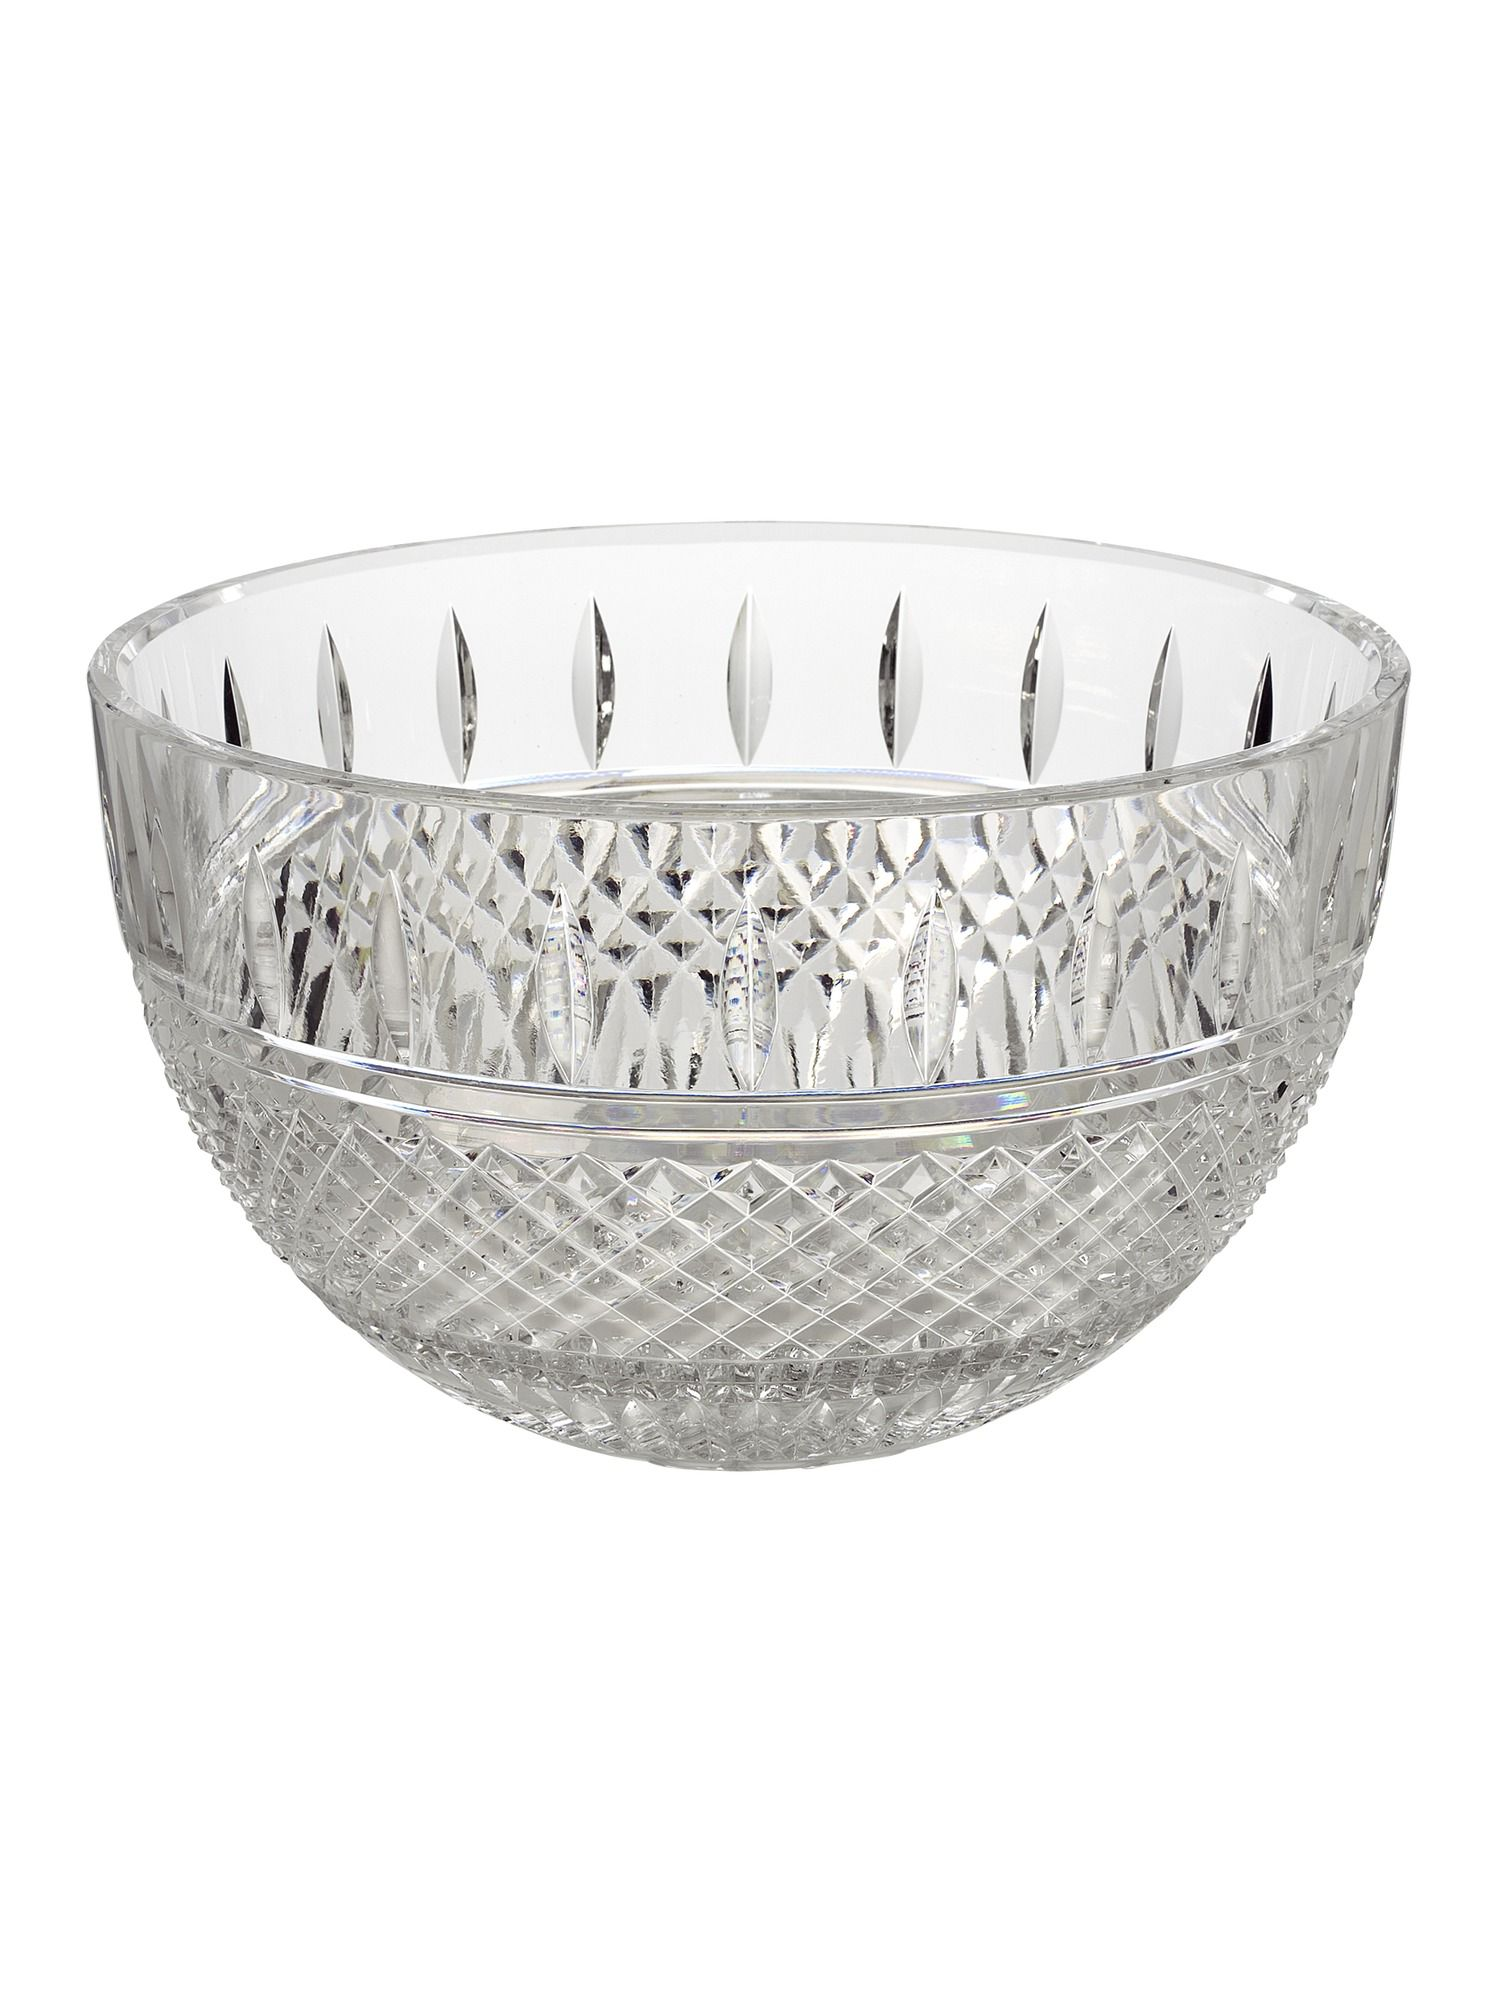 Irish lace 27cm bowl